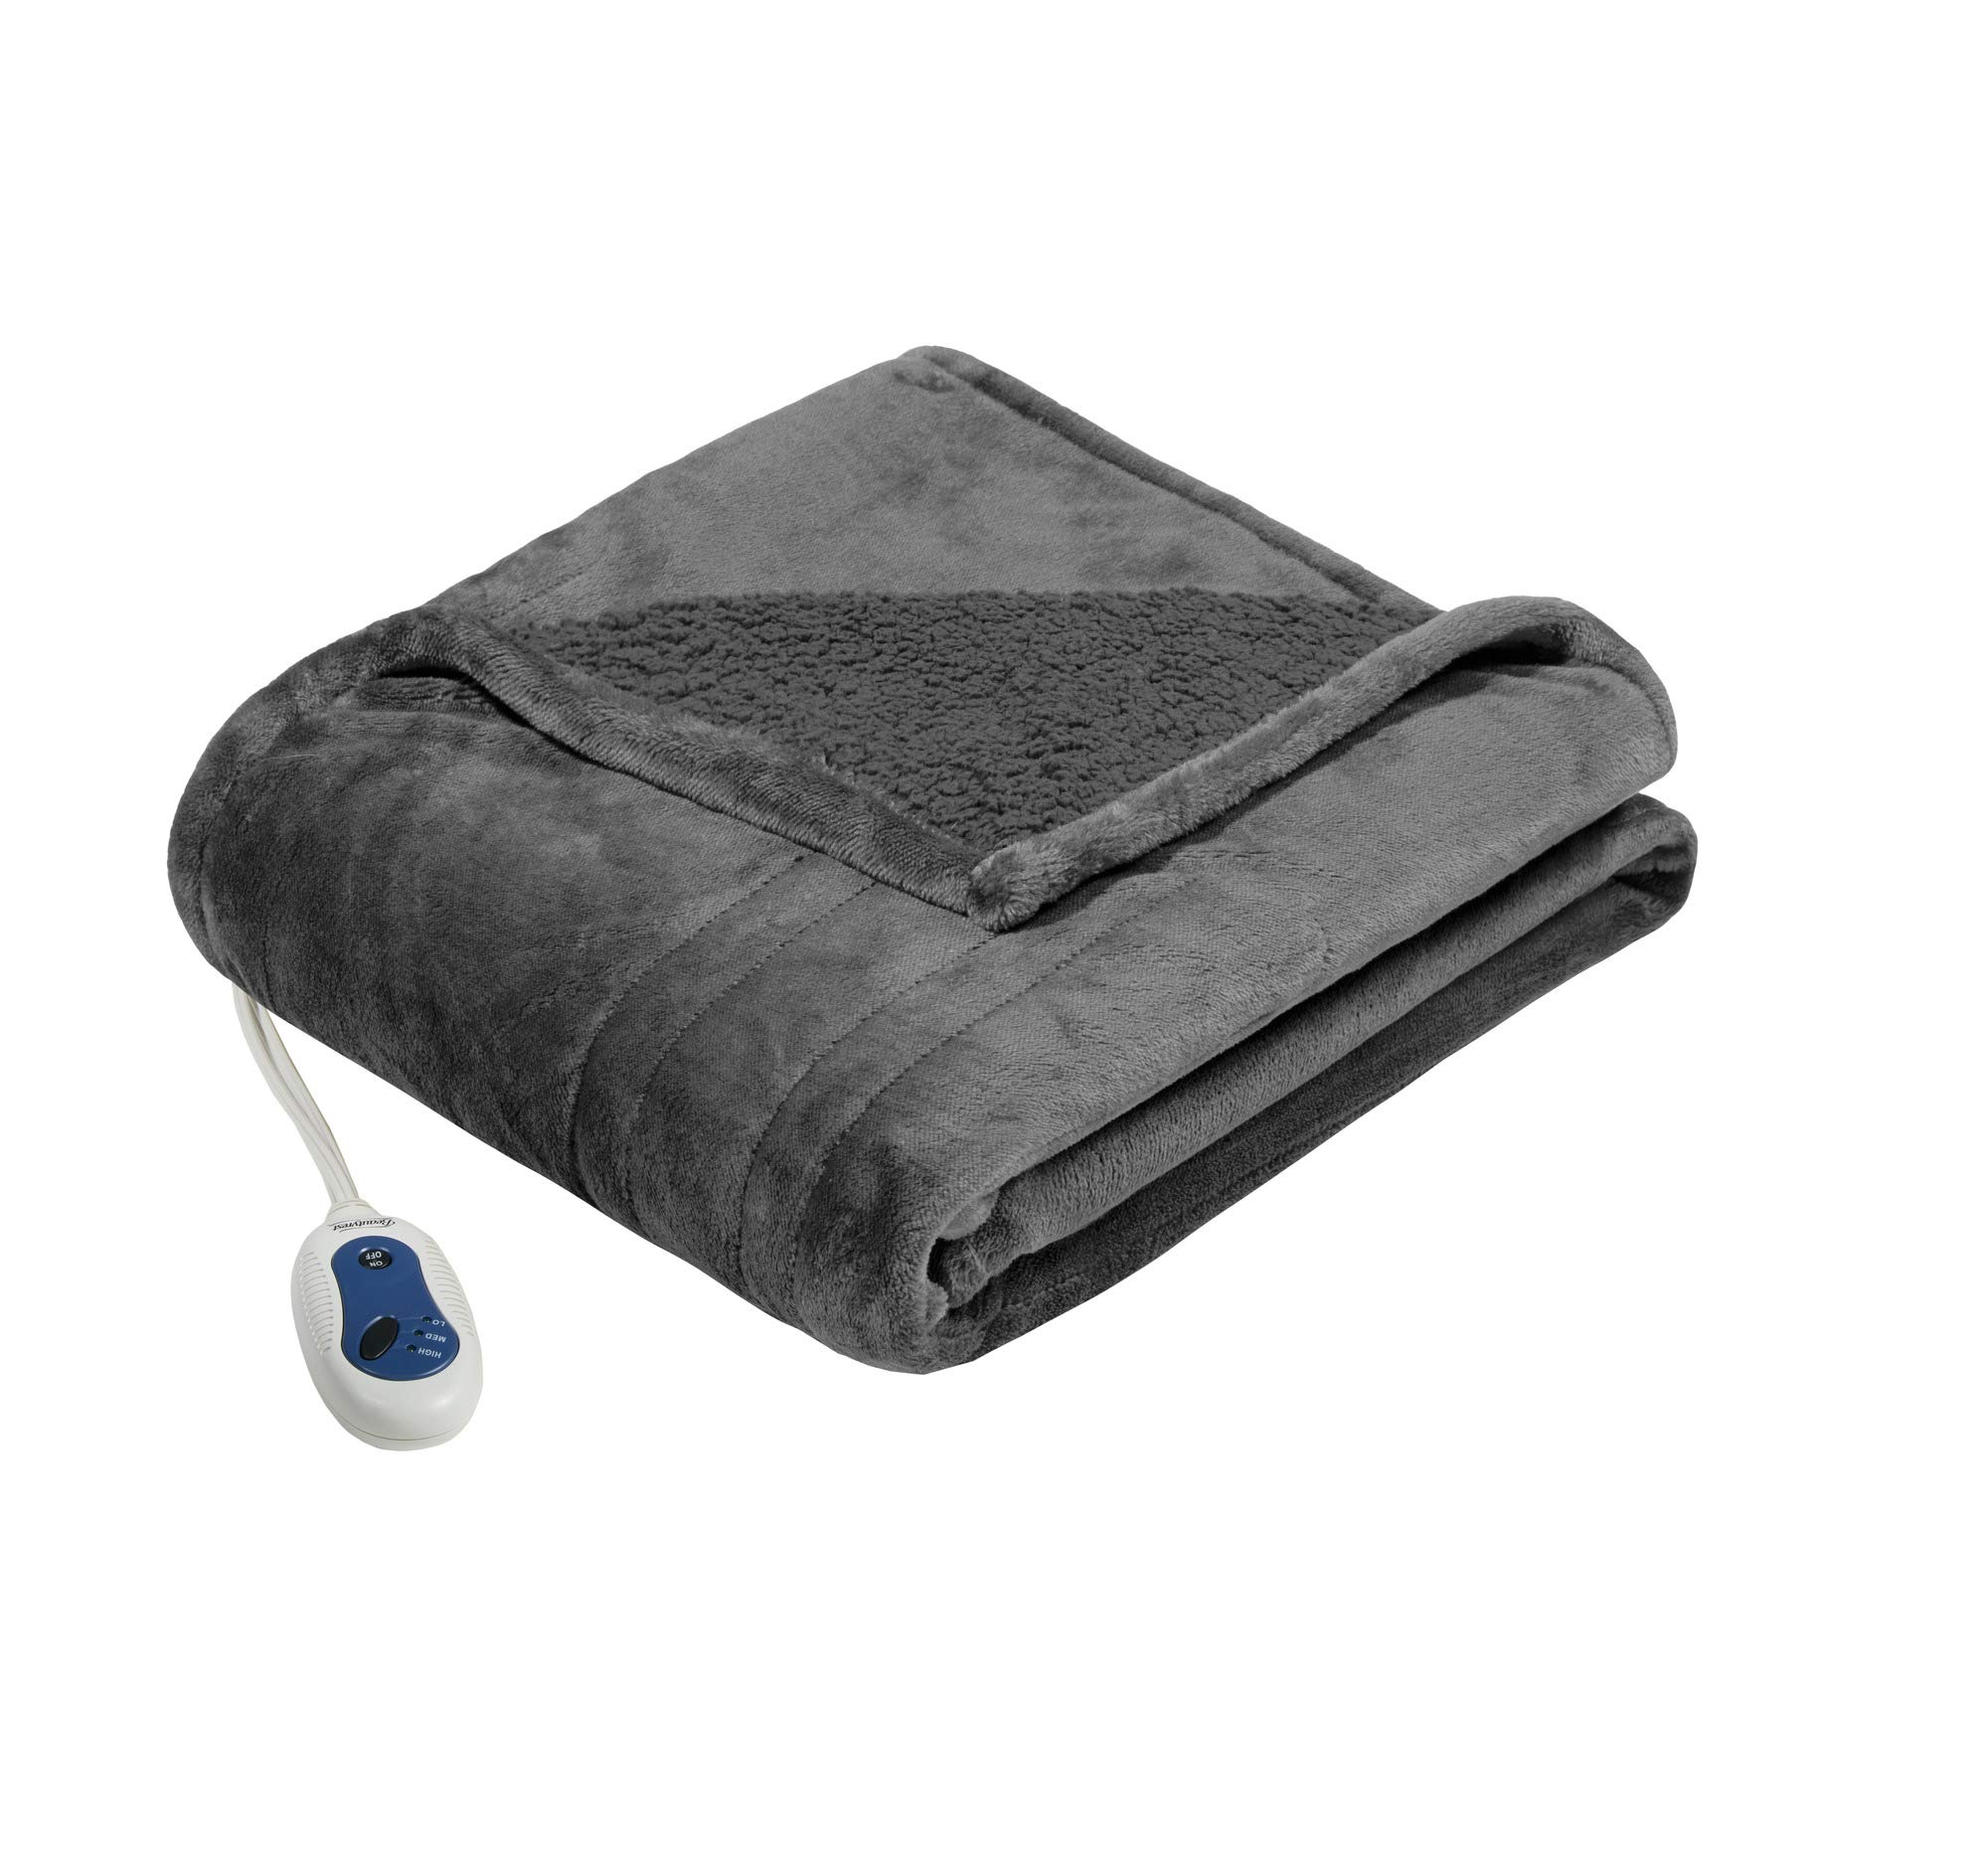 Beautyrest - Plush Heated Throw Blanket -Secure Comfort Technology-Oversized 60'' x 70''- Gray - Cozy Soft Microlight to Berber - Heated Electric Blanket Throw - 3-Setting Heat Controller-5 Yr Warranty